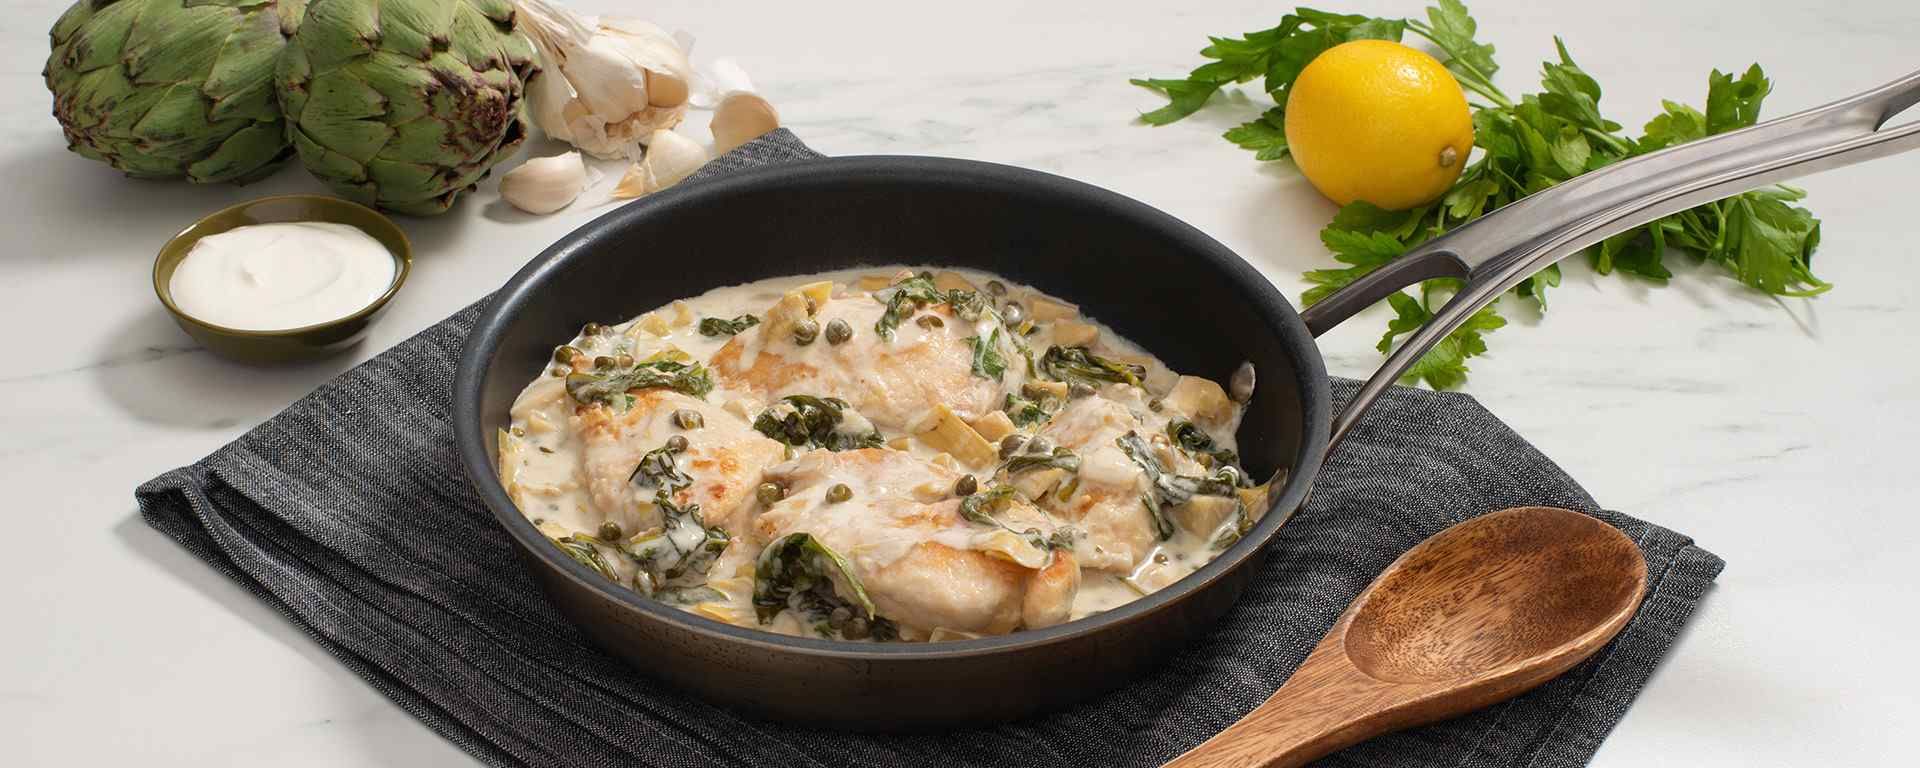 Photo for - Creamy Spinach and Artichoke Chicken Piccata